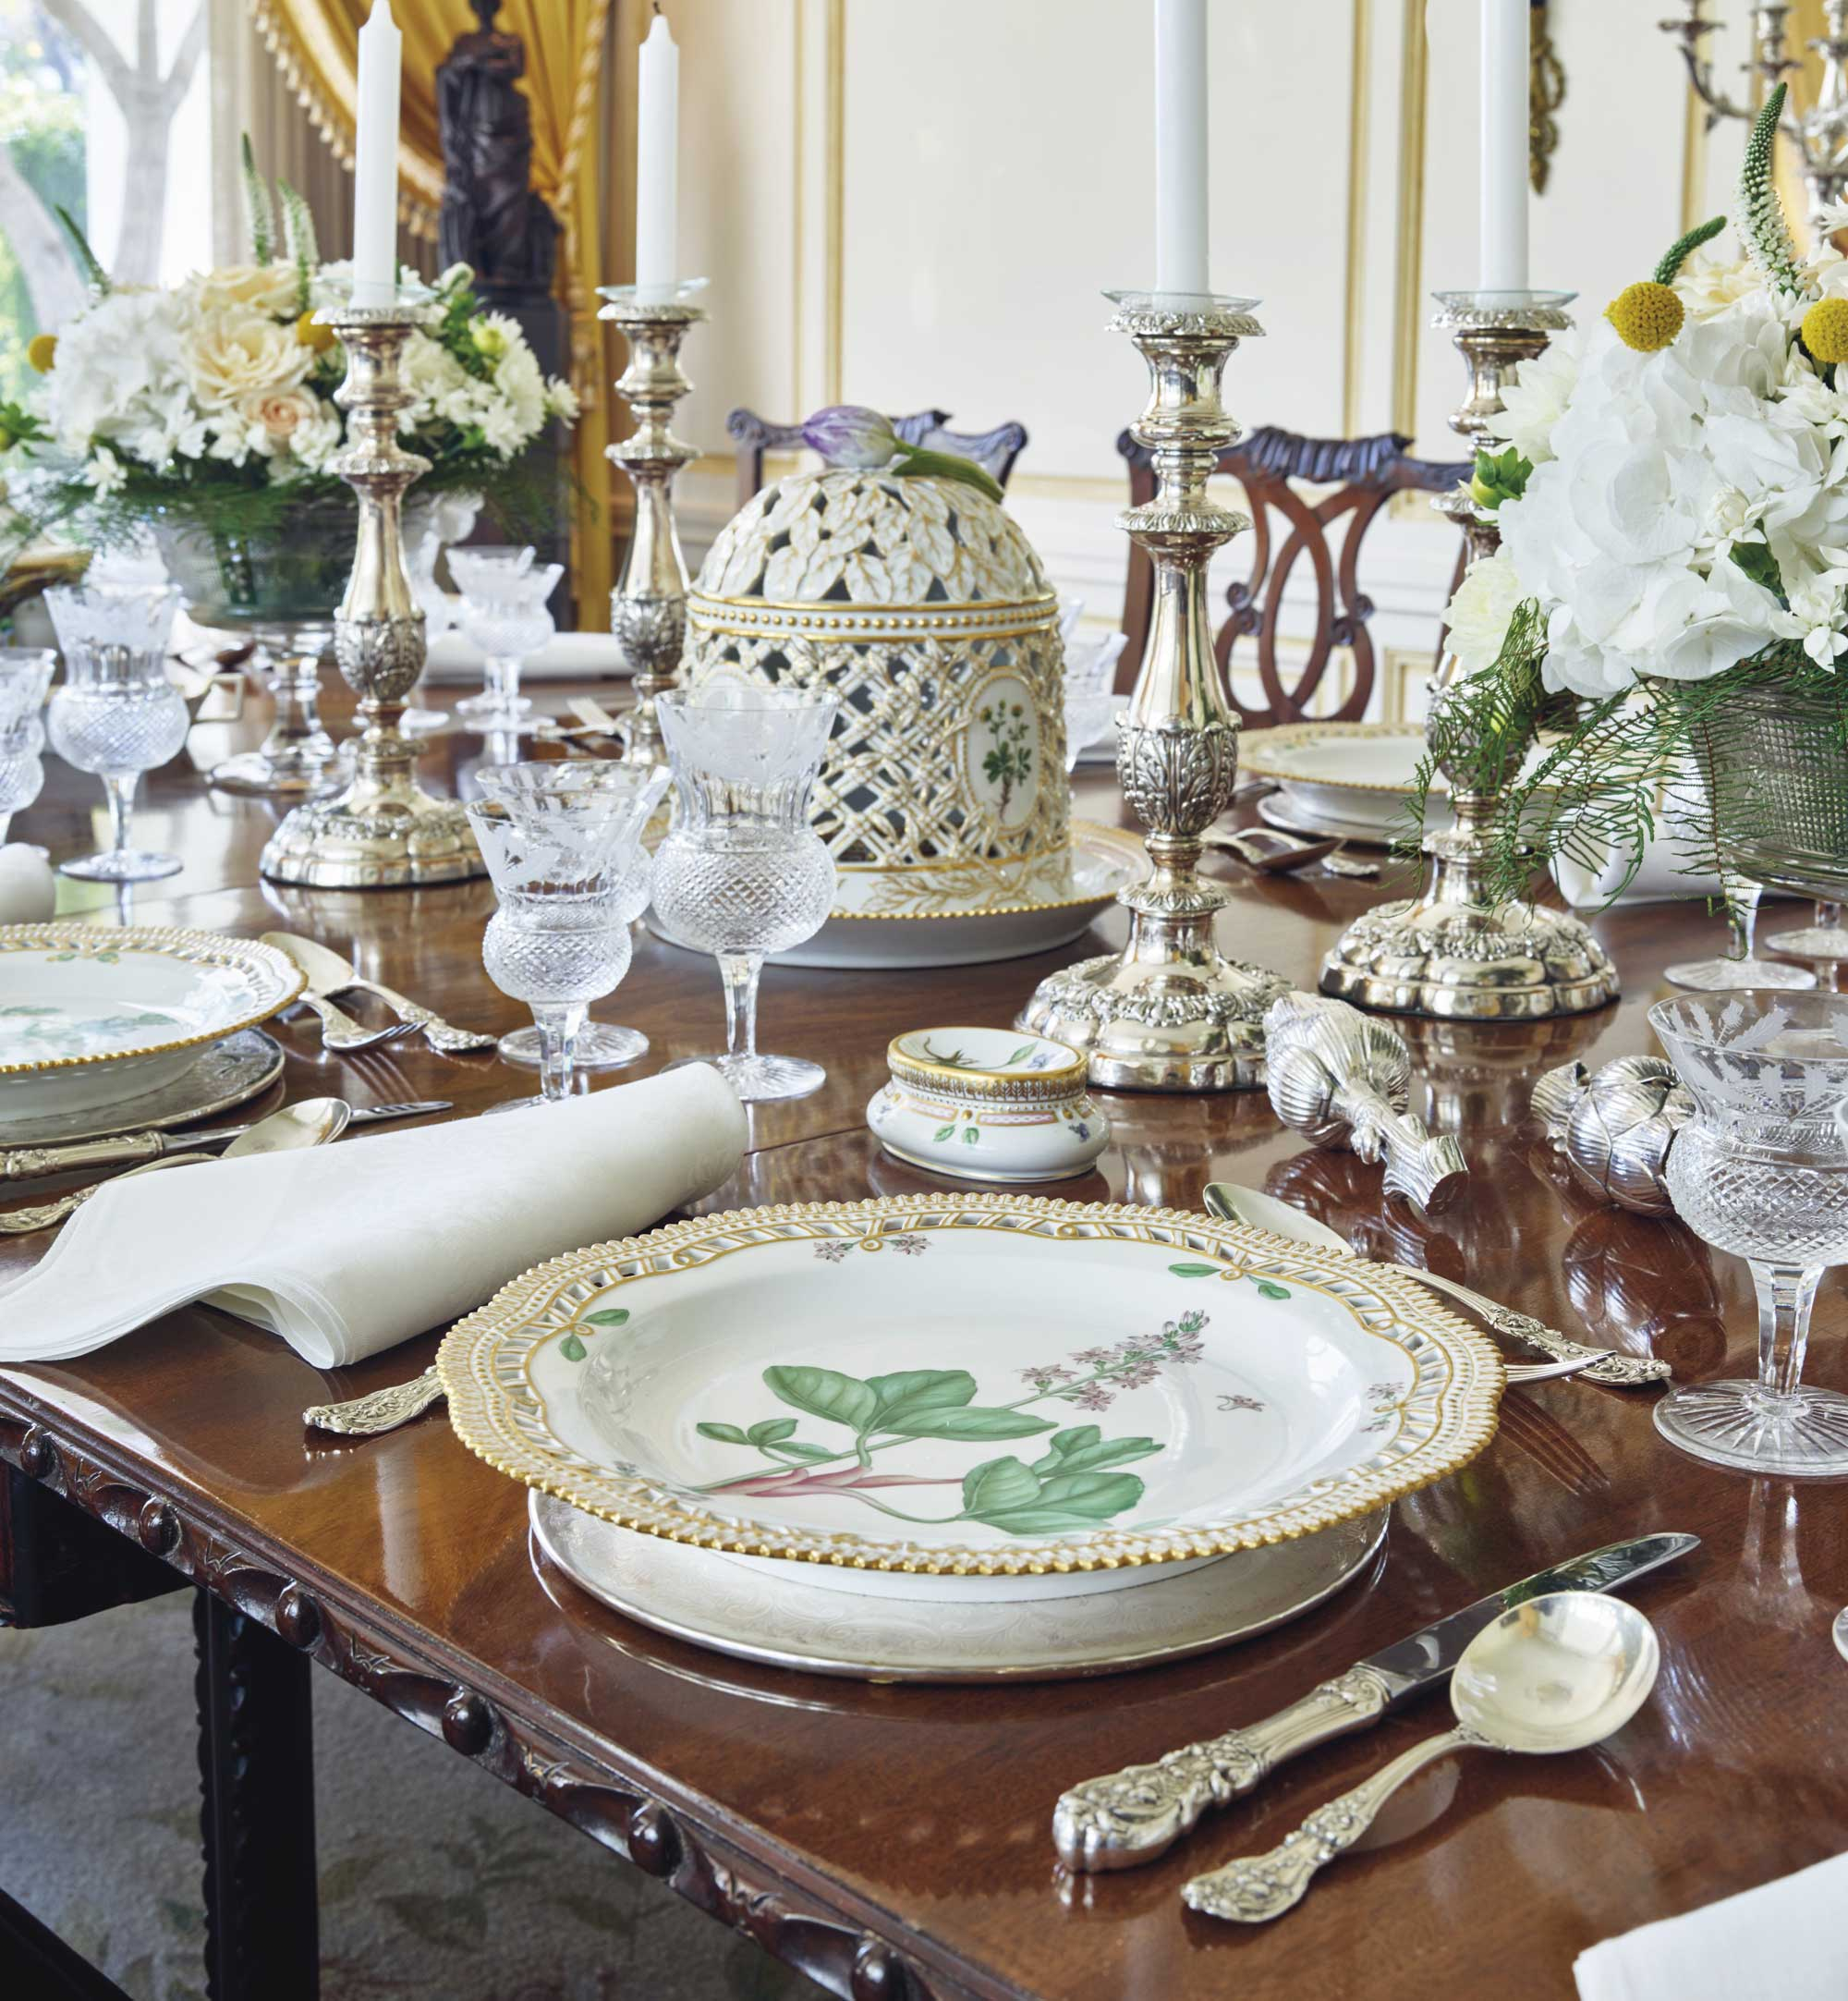 The dining room at Mrs. Bloomingdale's Hollywood Regency villa, featuring the Early George III Mahogany Gate-Leg Dining Table with the 'Flora Danica' Part Dinner Service.